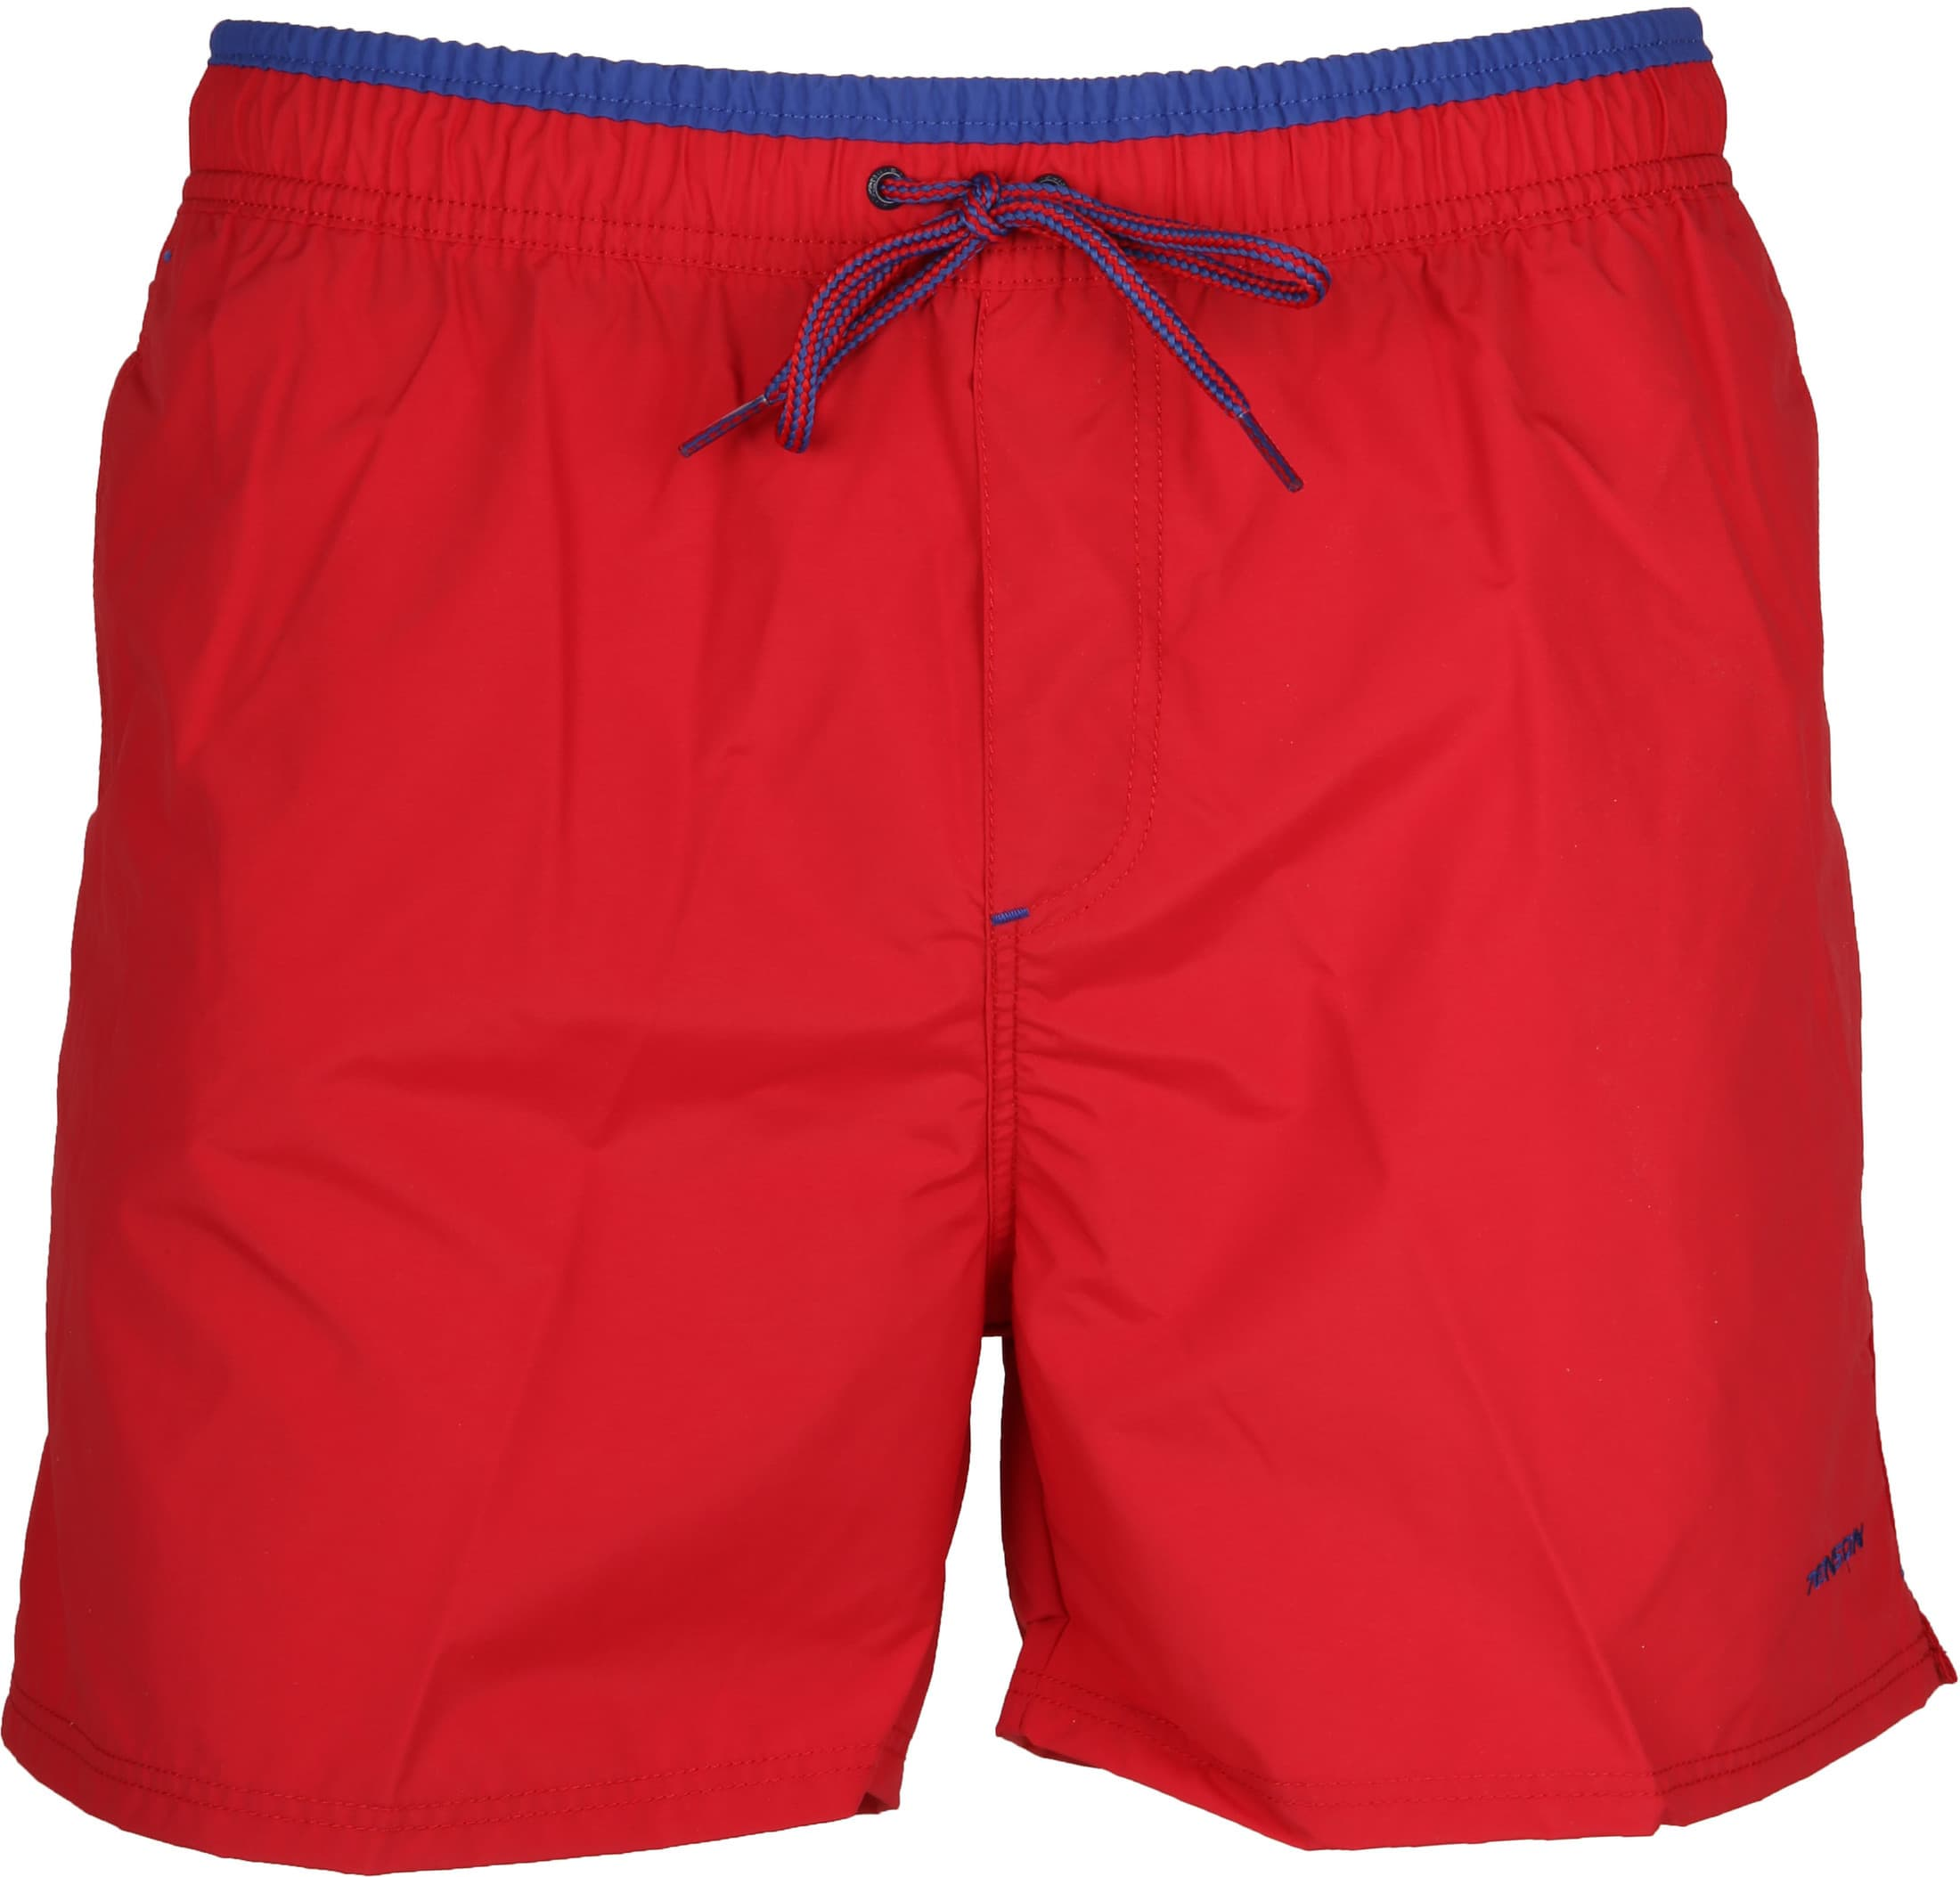 Tenson Swimshort Kos Red foto 0